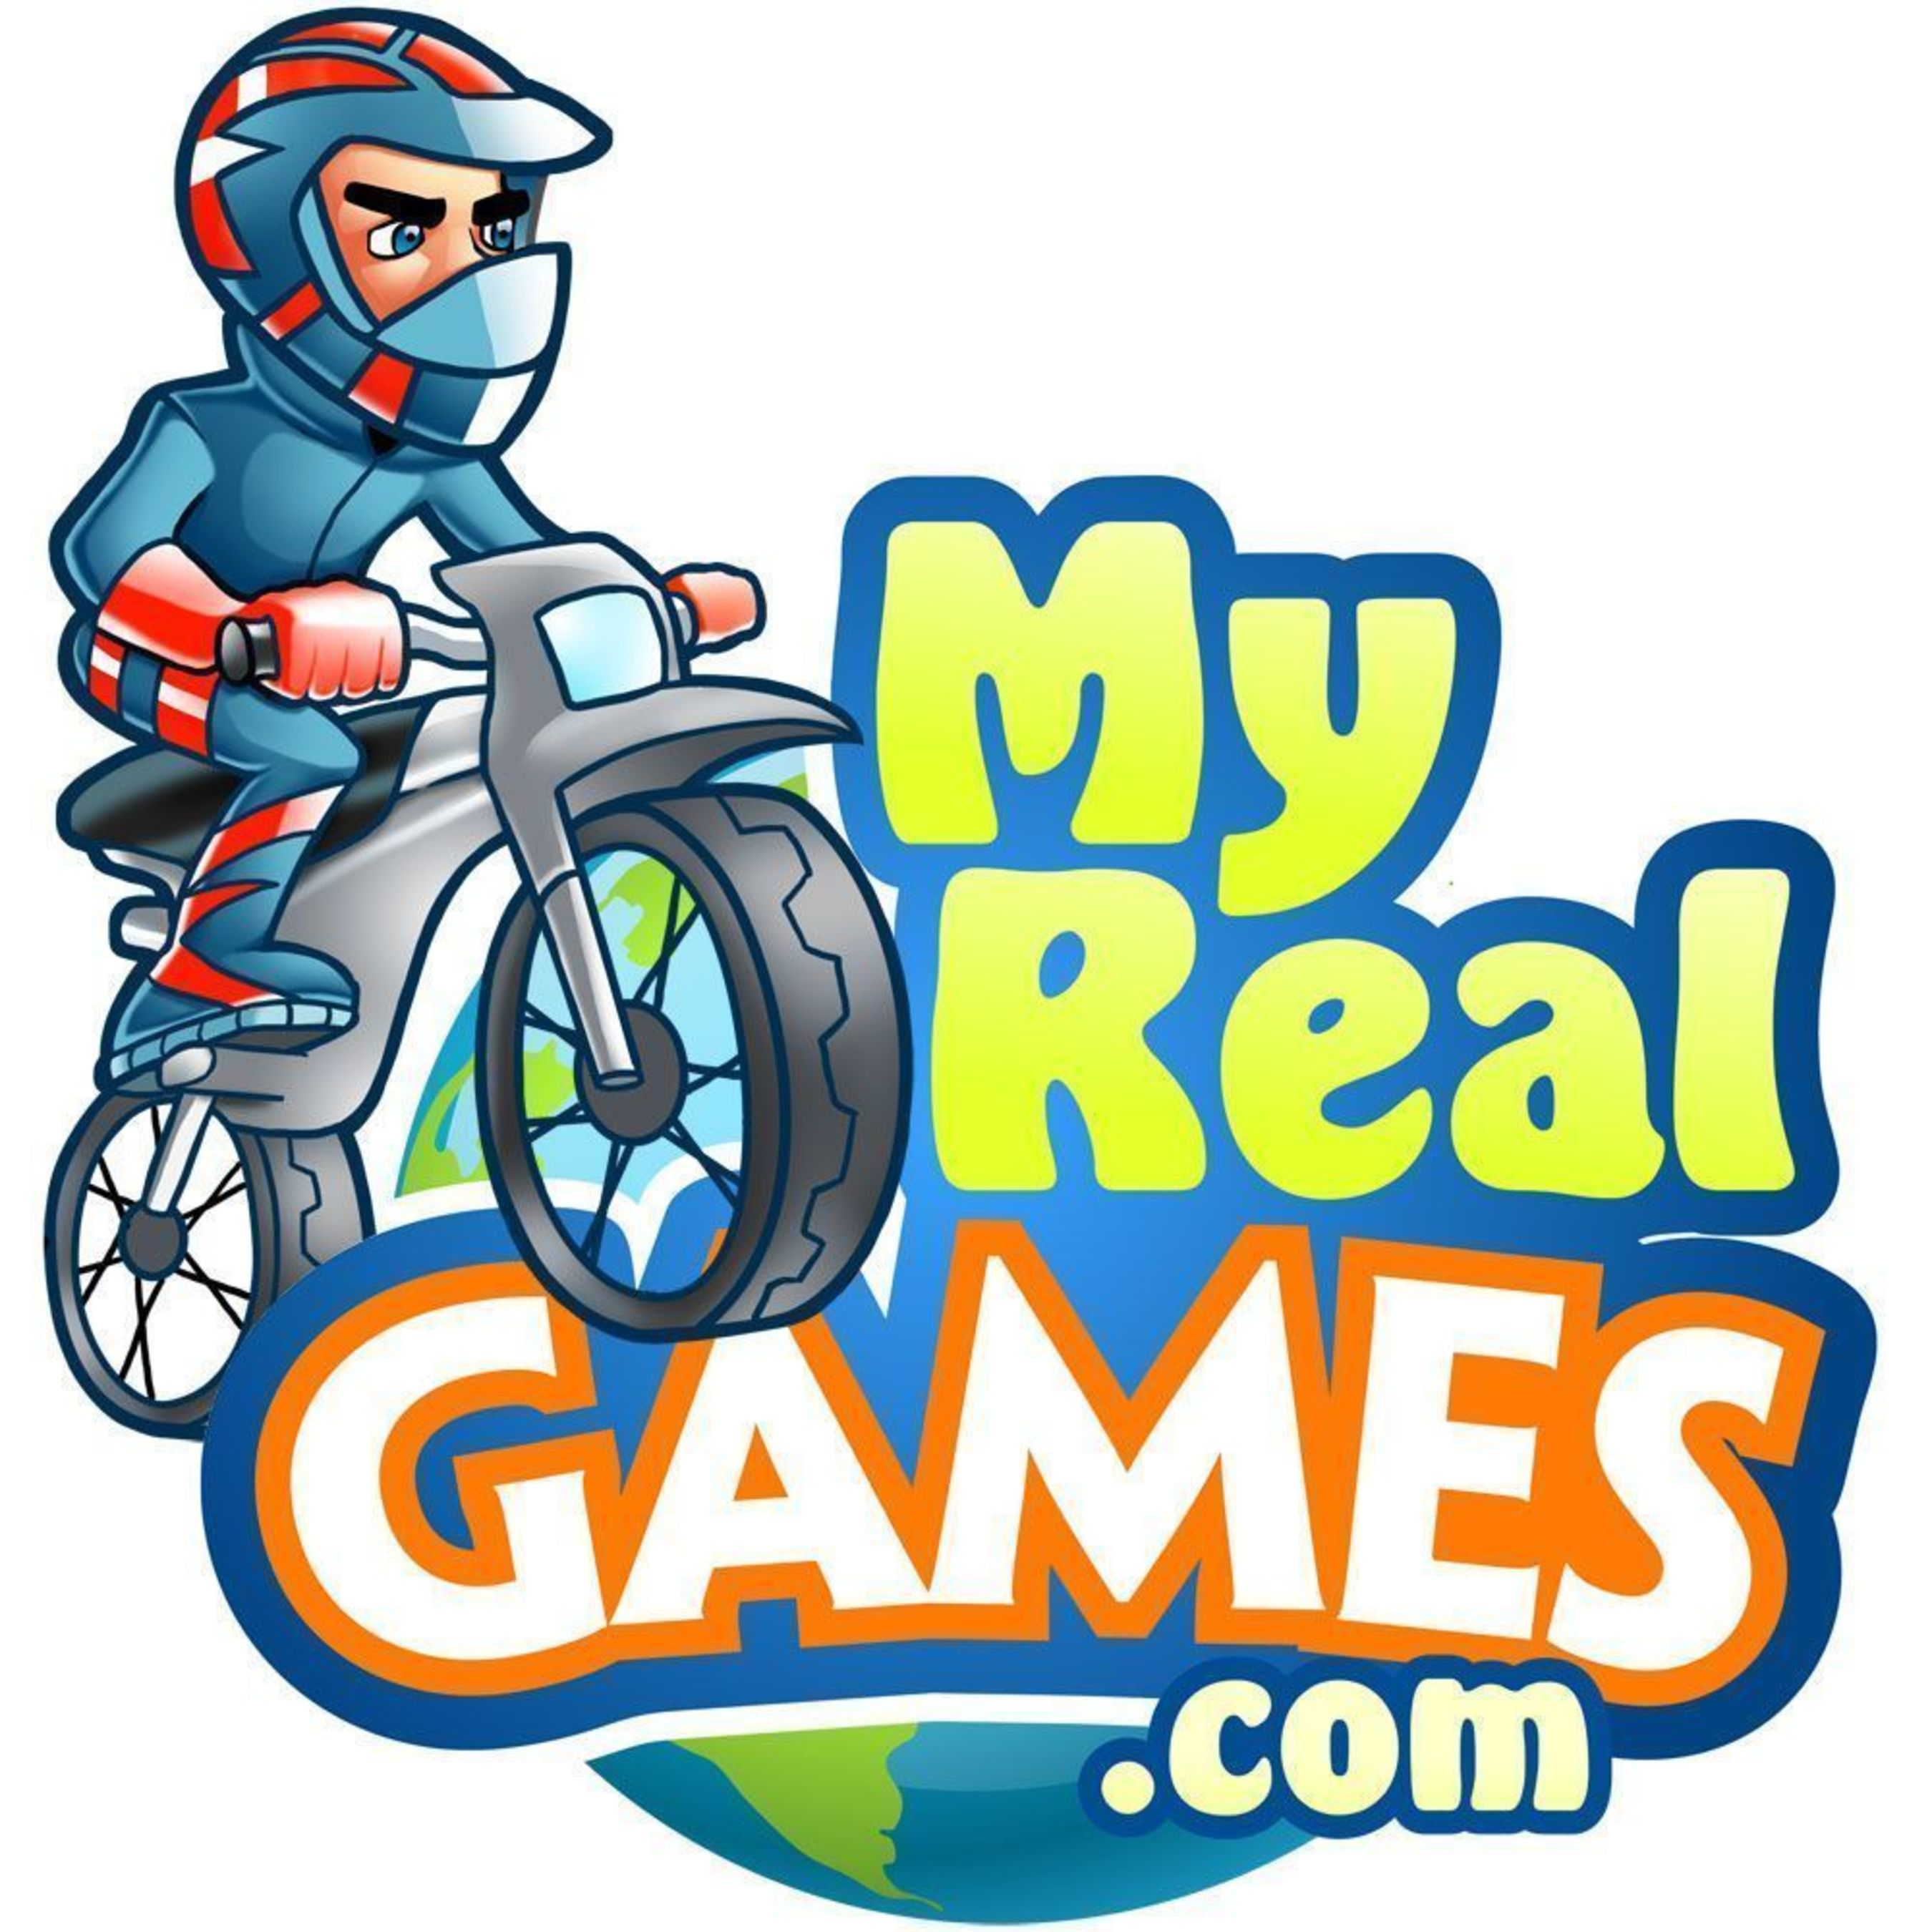 Aliens Attack, Murder Mysteries and Dream Vacations - Top Gaming Site MyRealGames Launches New Titles for May